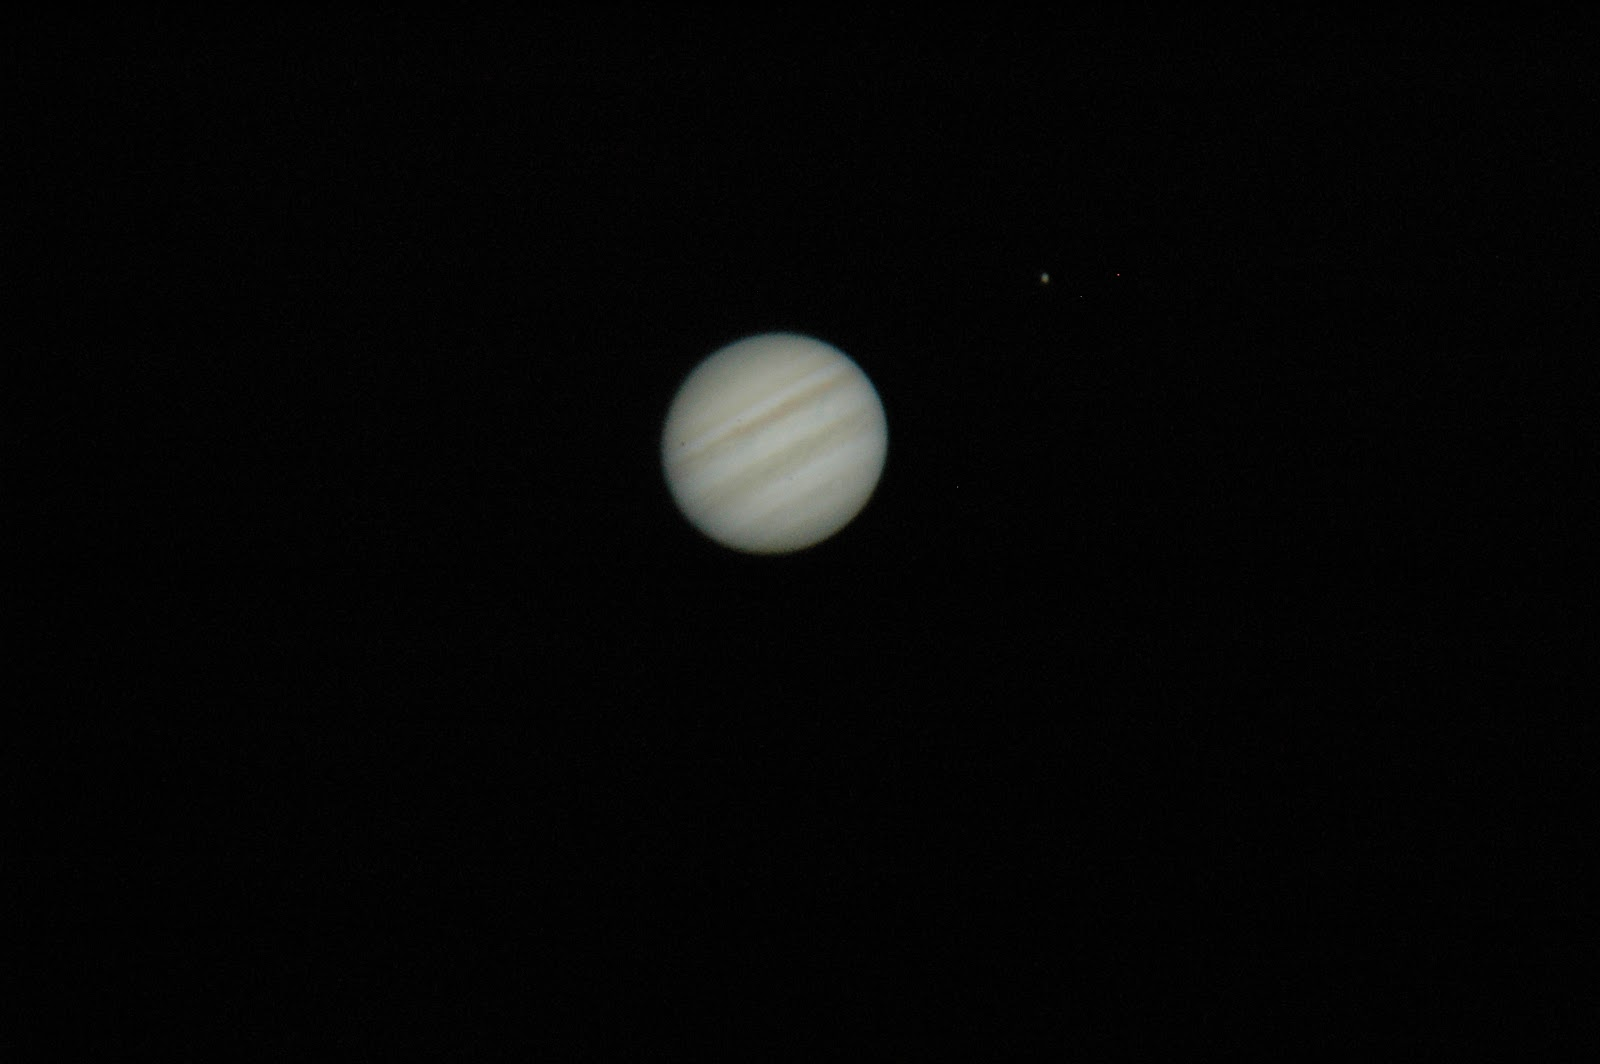 jupiter and moons through telescope - photo #18